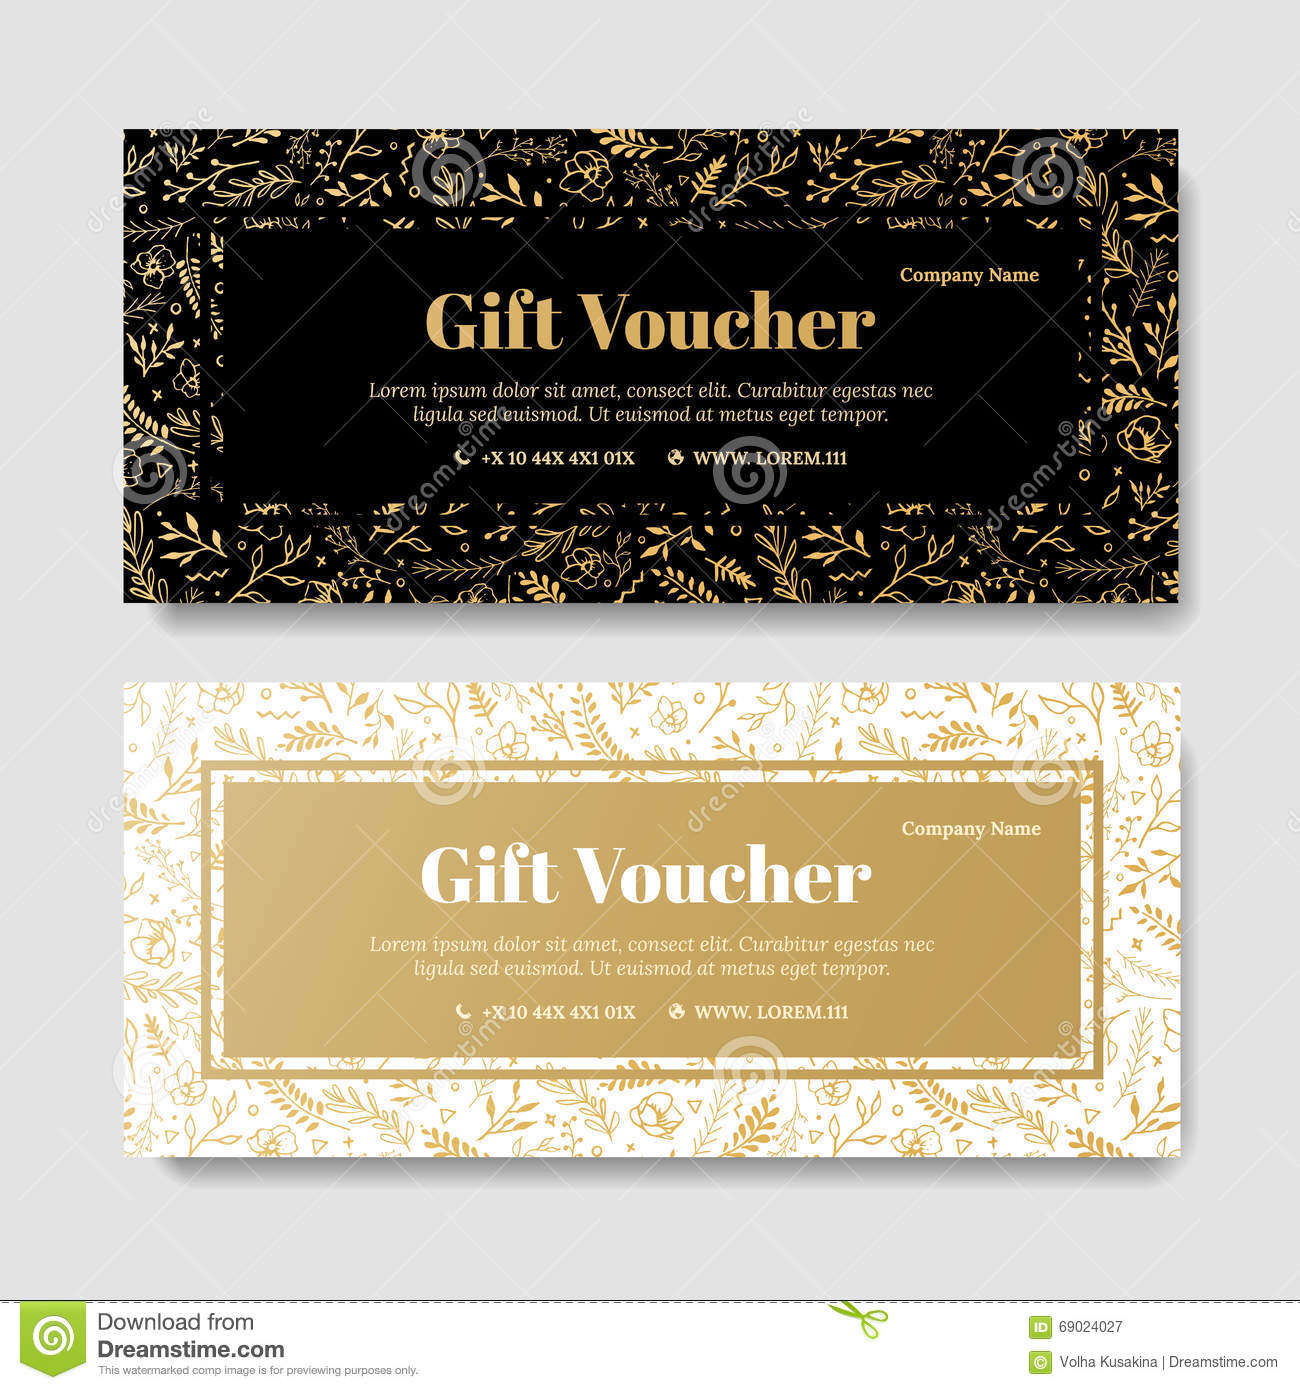 Gift premium voucher coupon template stock illustration gift premium voucher coupon template royalty free illustration yadclub Image collections